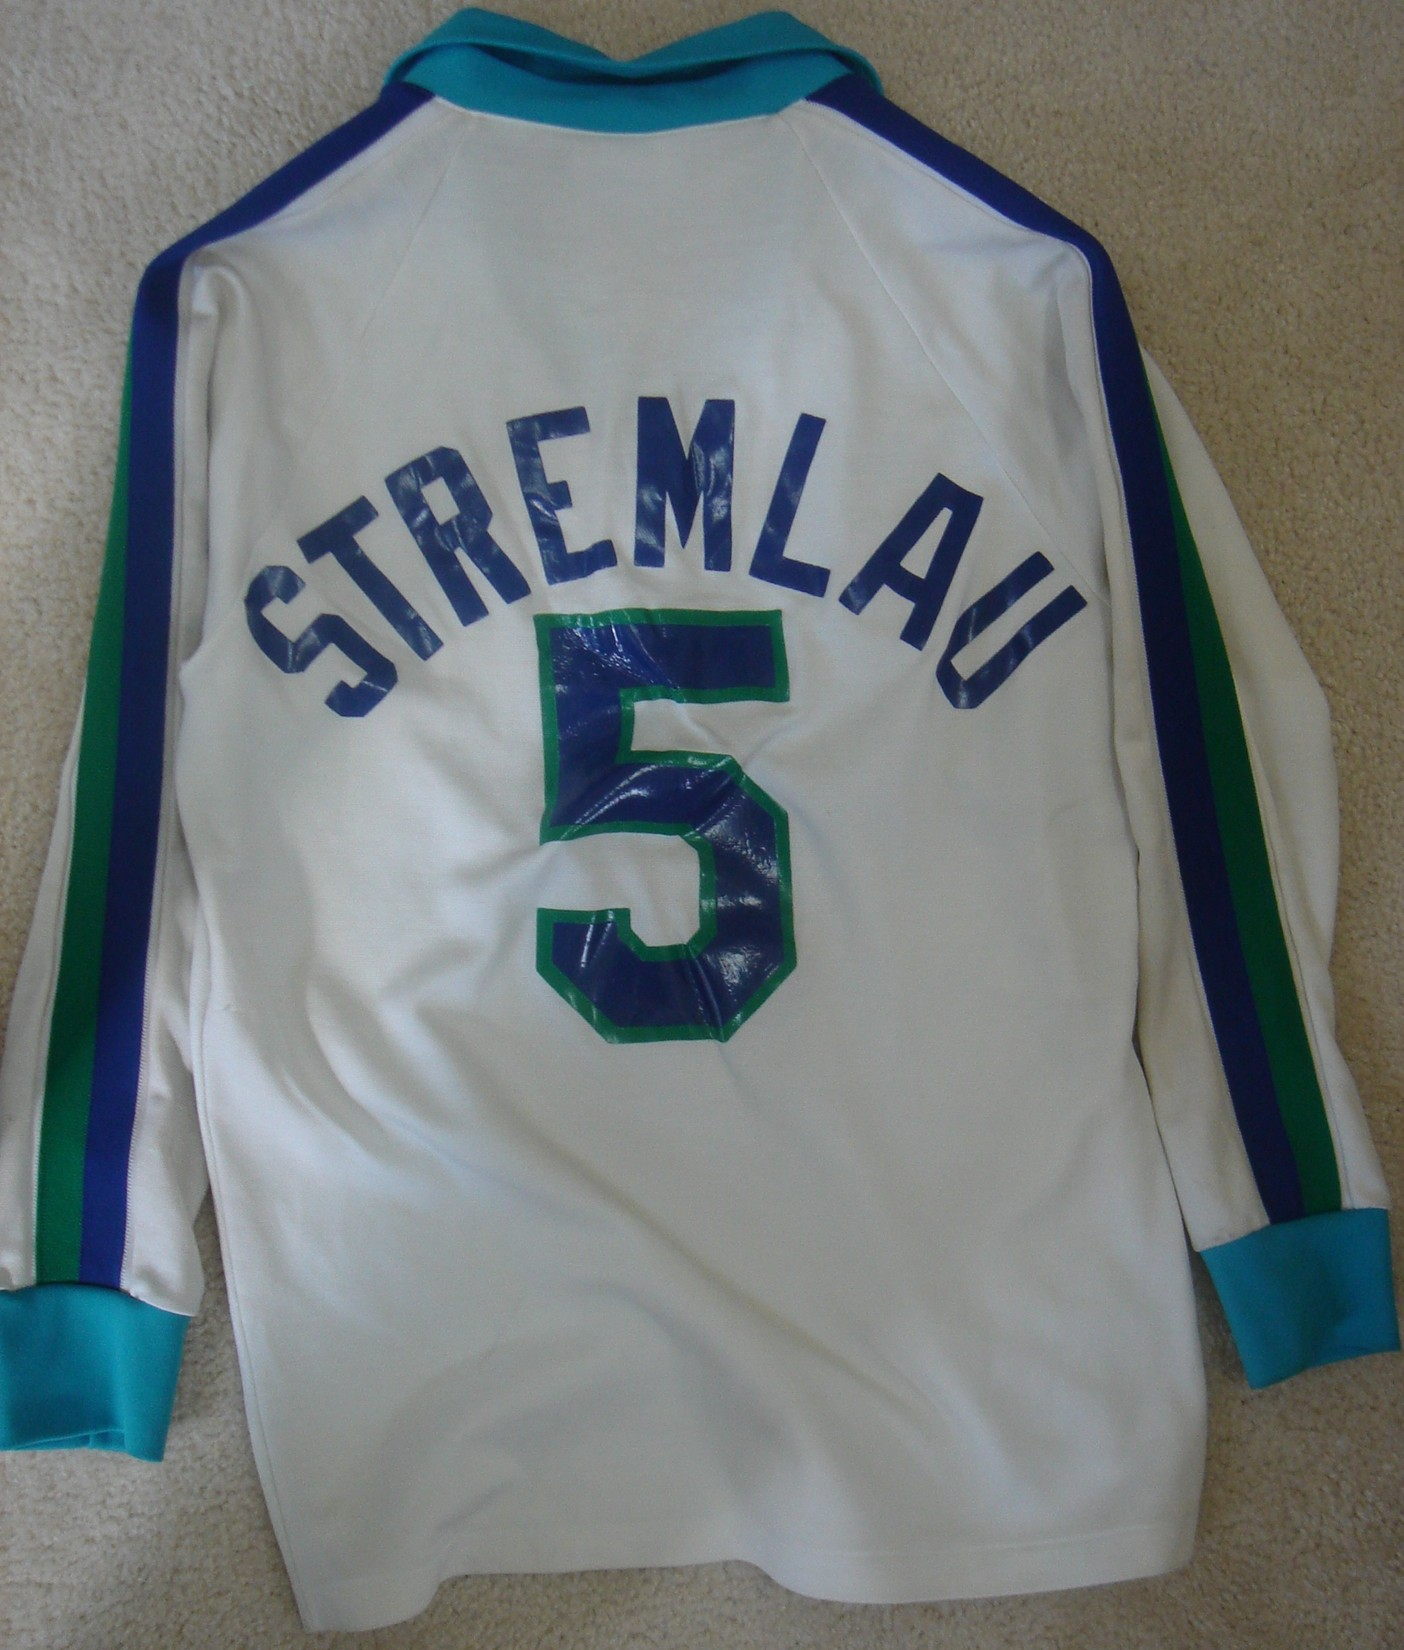 John Stremlau Major Indoor Soccer League Jerseys